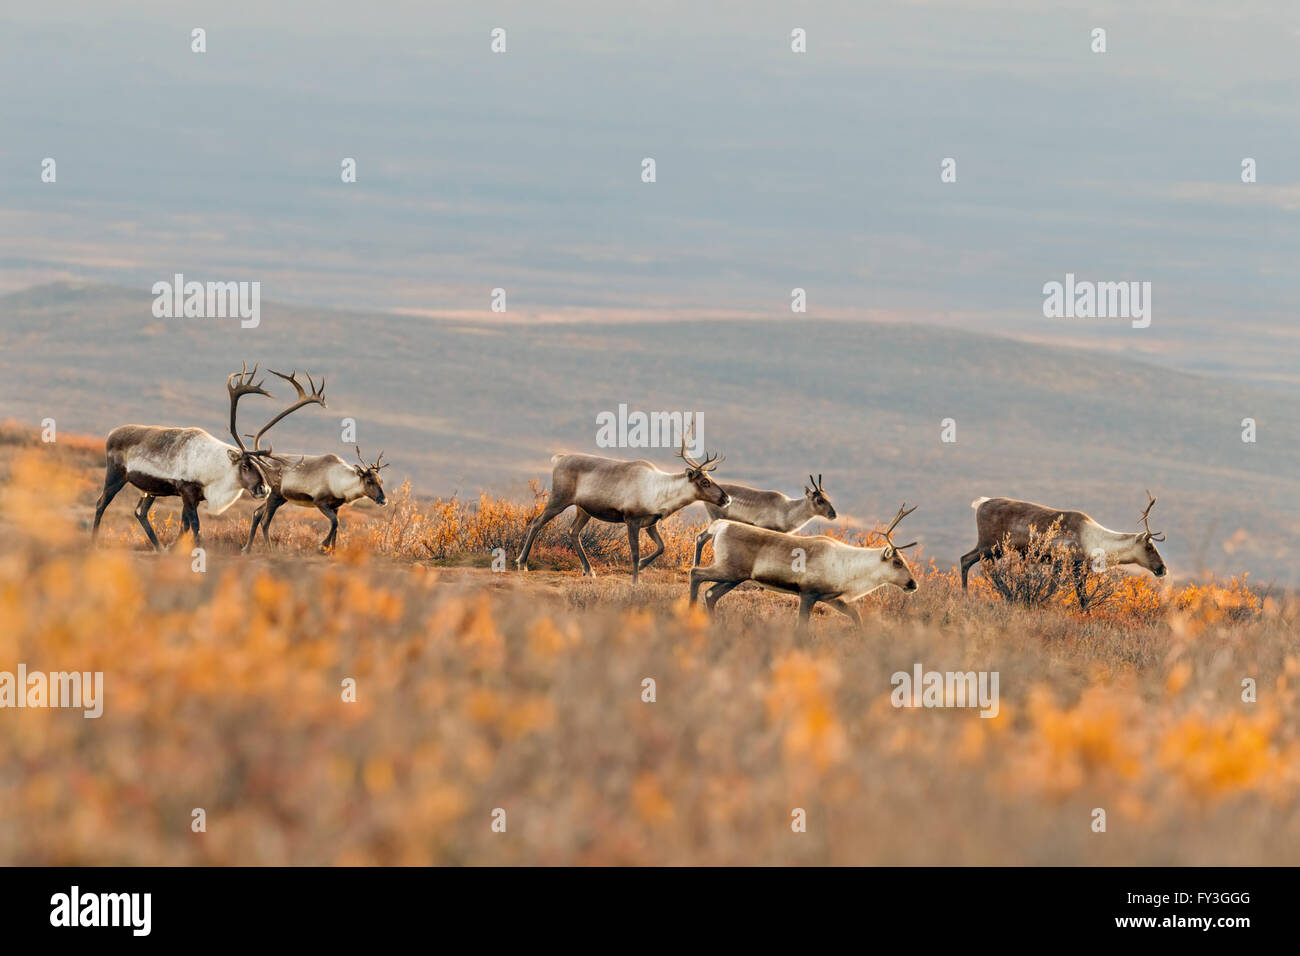 A bull caribou follows his harem in the Alaska tundra during the autumn rut. - Stock Image